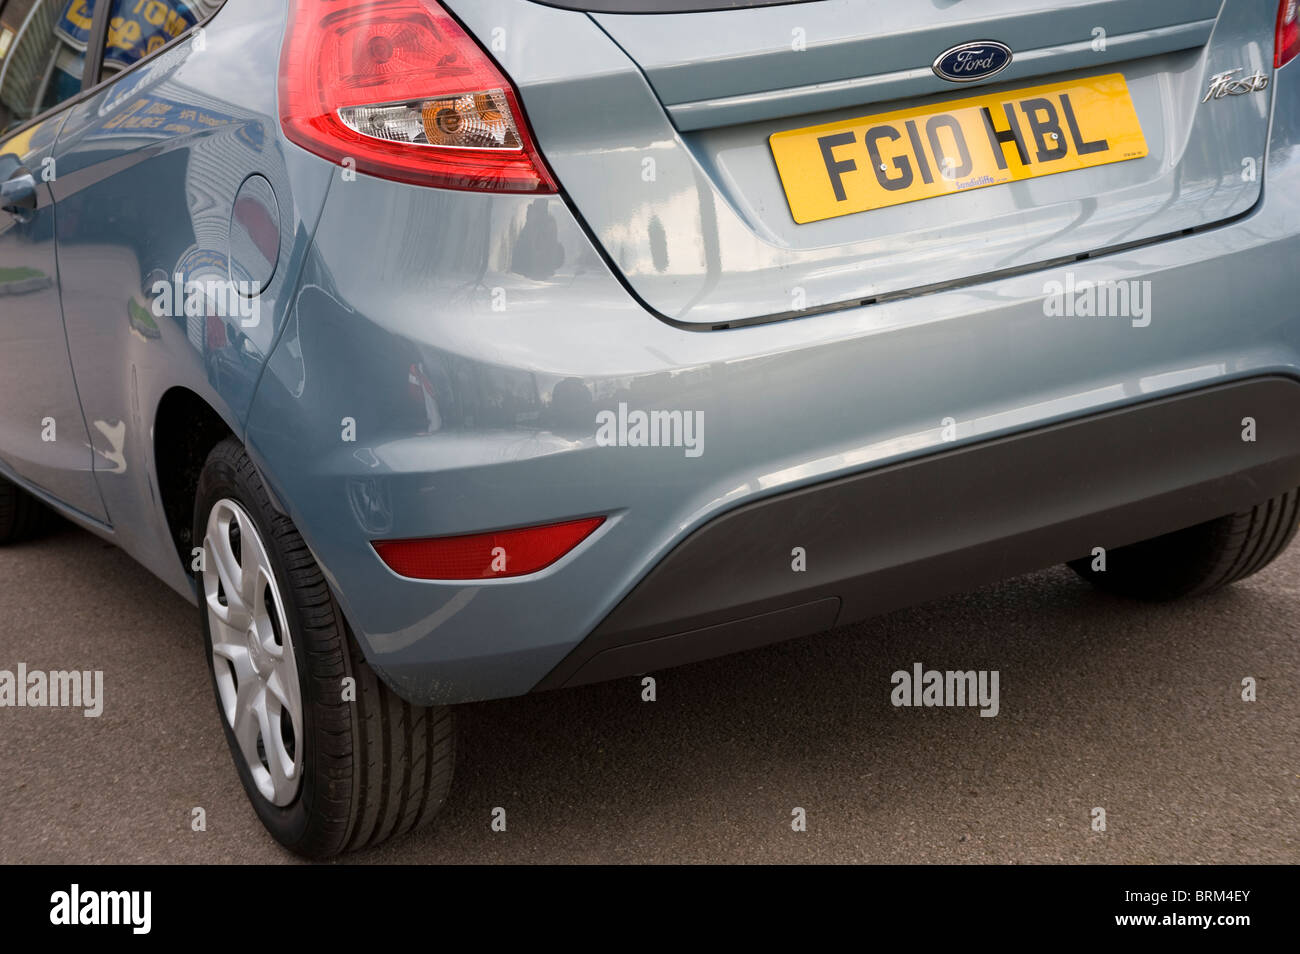 Close up view of rear of a ford fiesta city car. Stock Photo